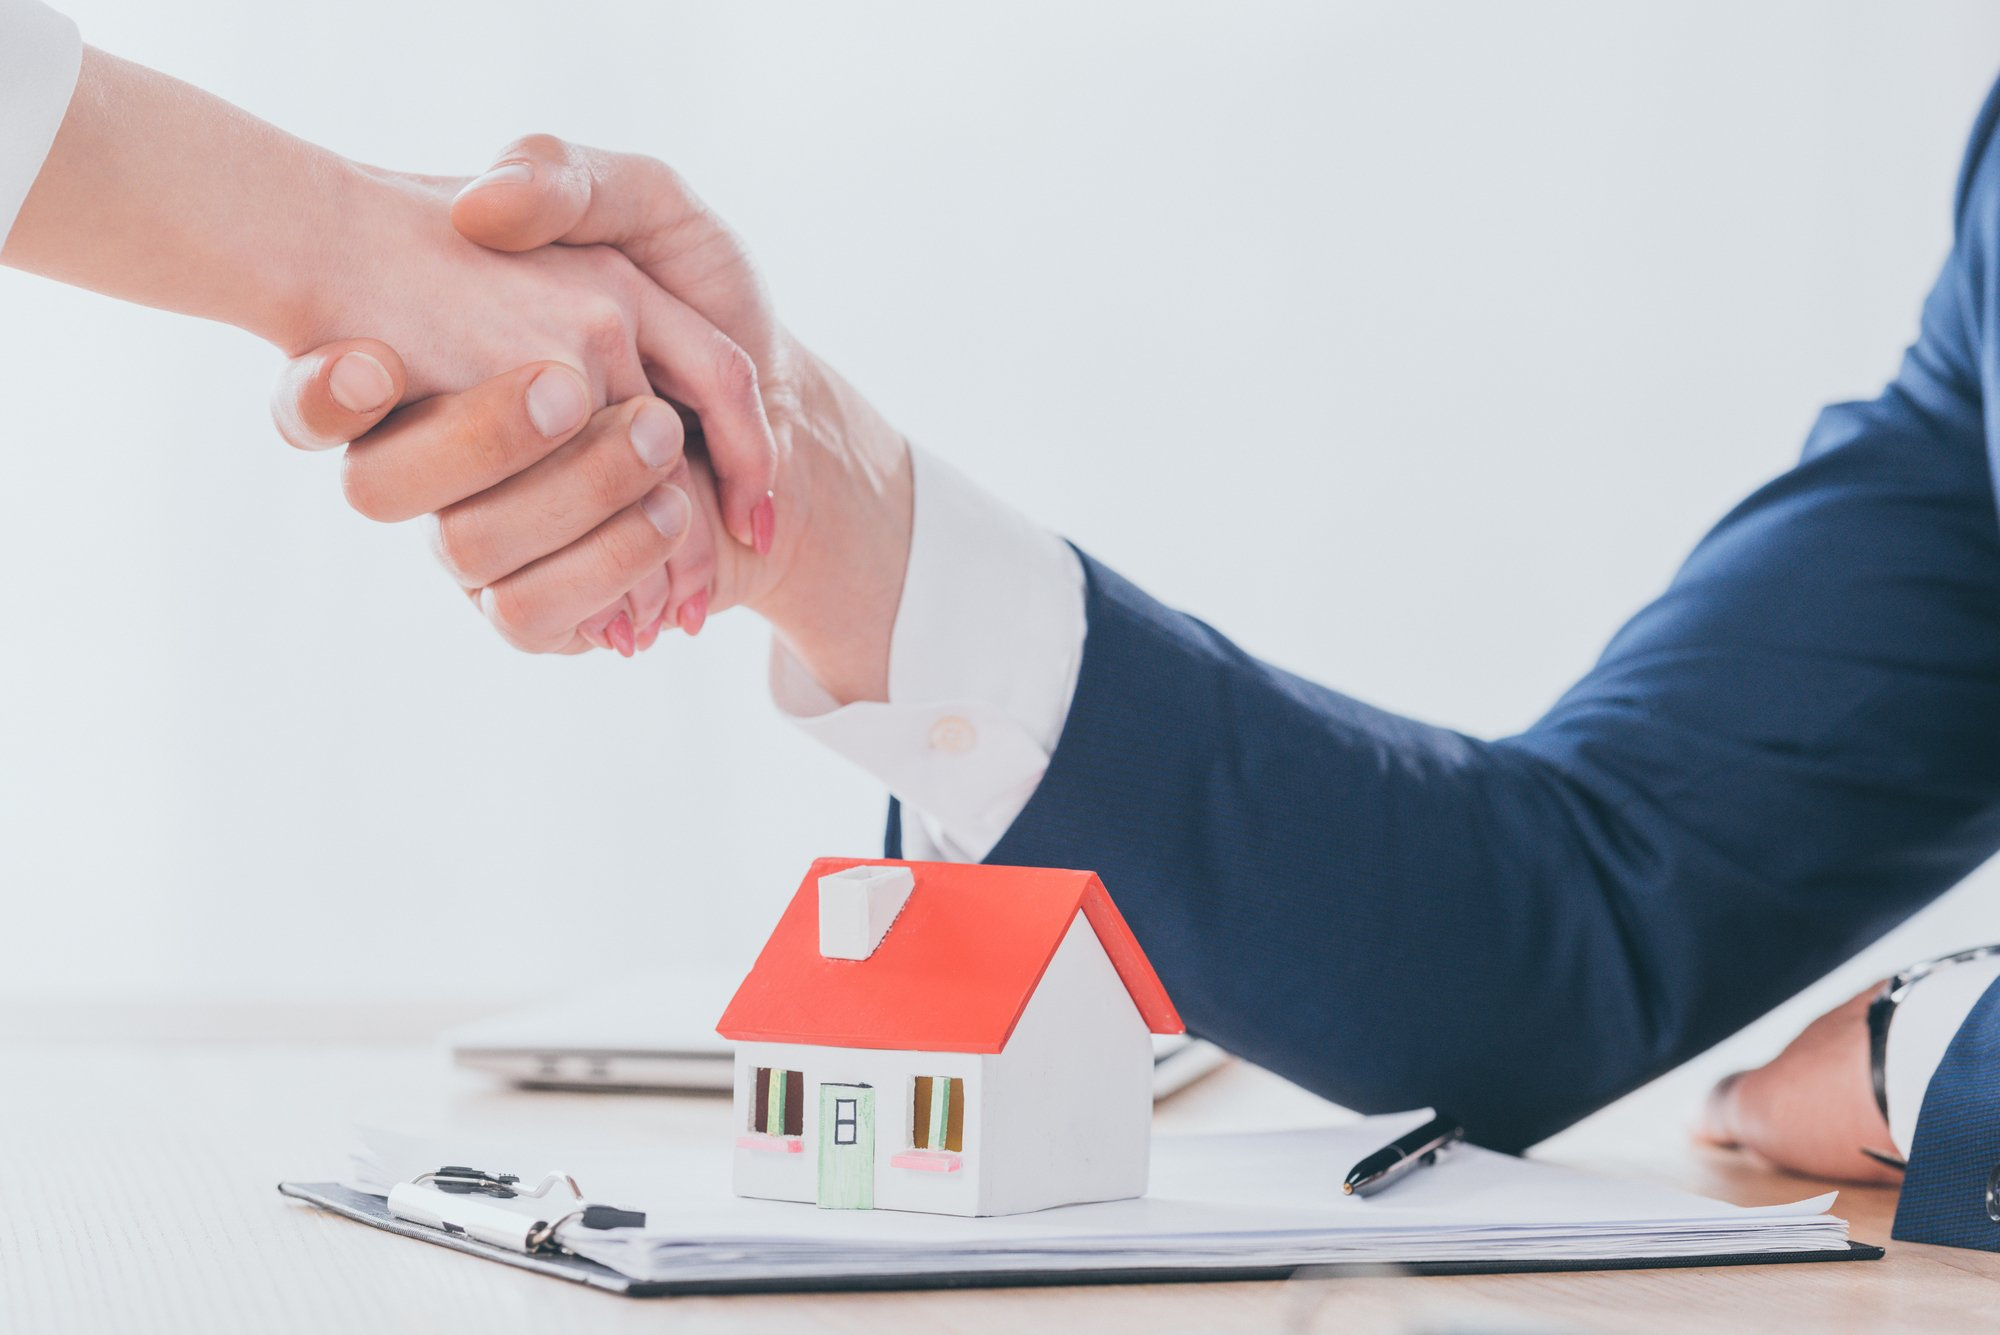 Partial view of realtor shaking hands with customer near house model on tabletop